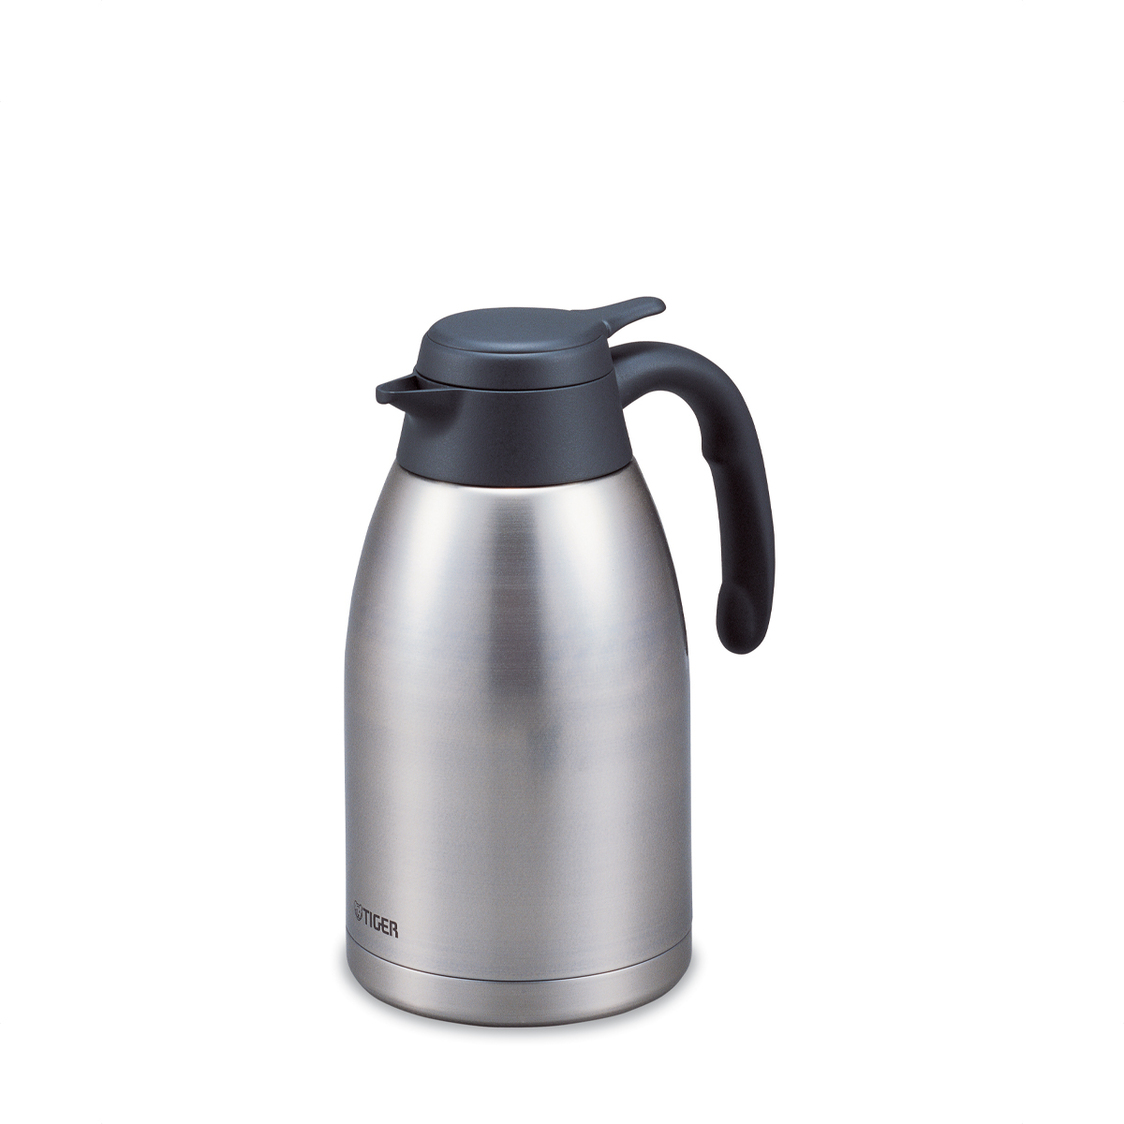 Tiger 16L Double Stainless Steel Handy Jug PWL-A162